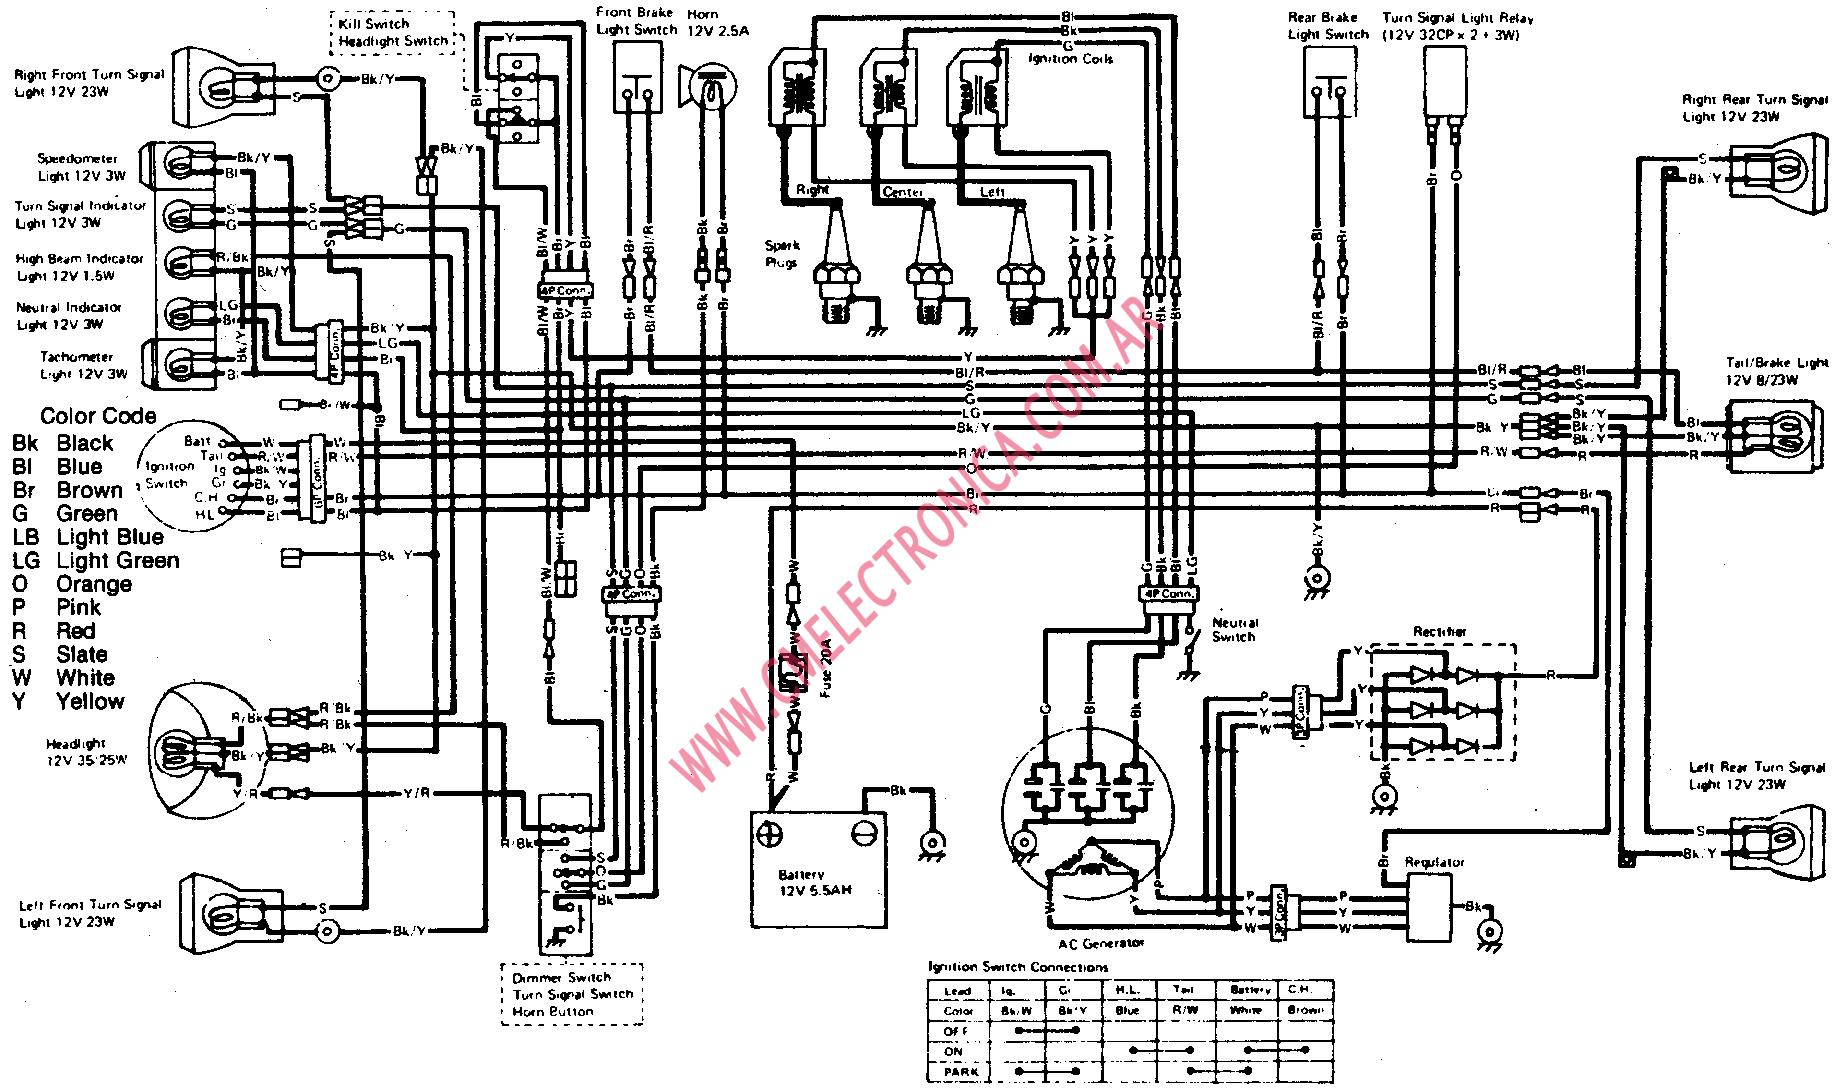 2001 Polaris Sportsman 90 Wiring Diagram Database